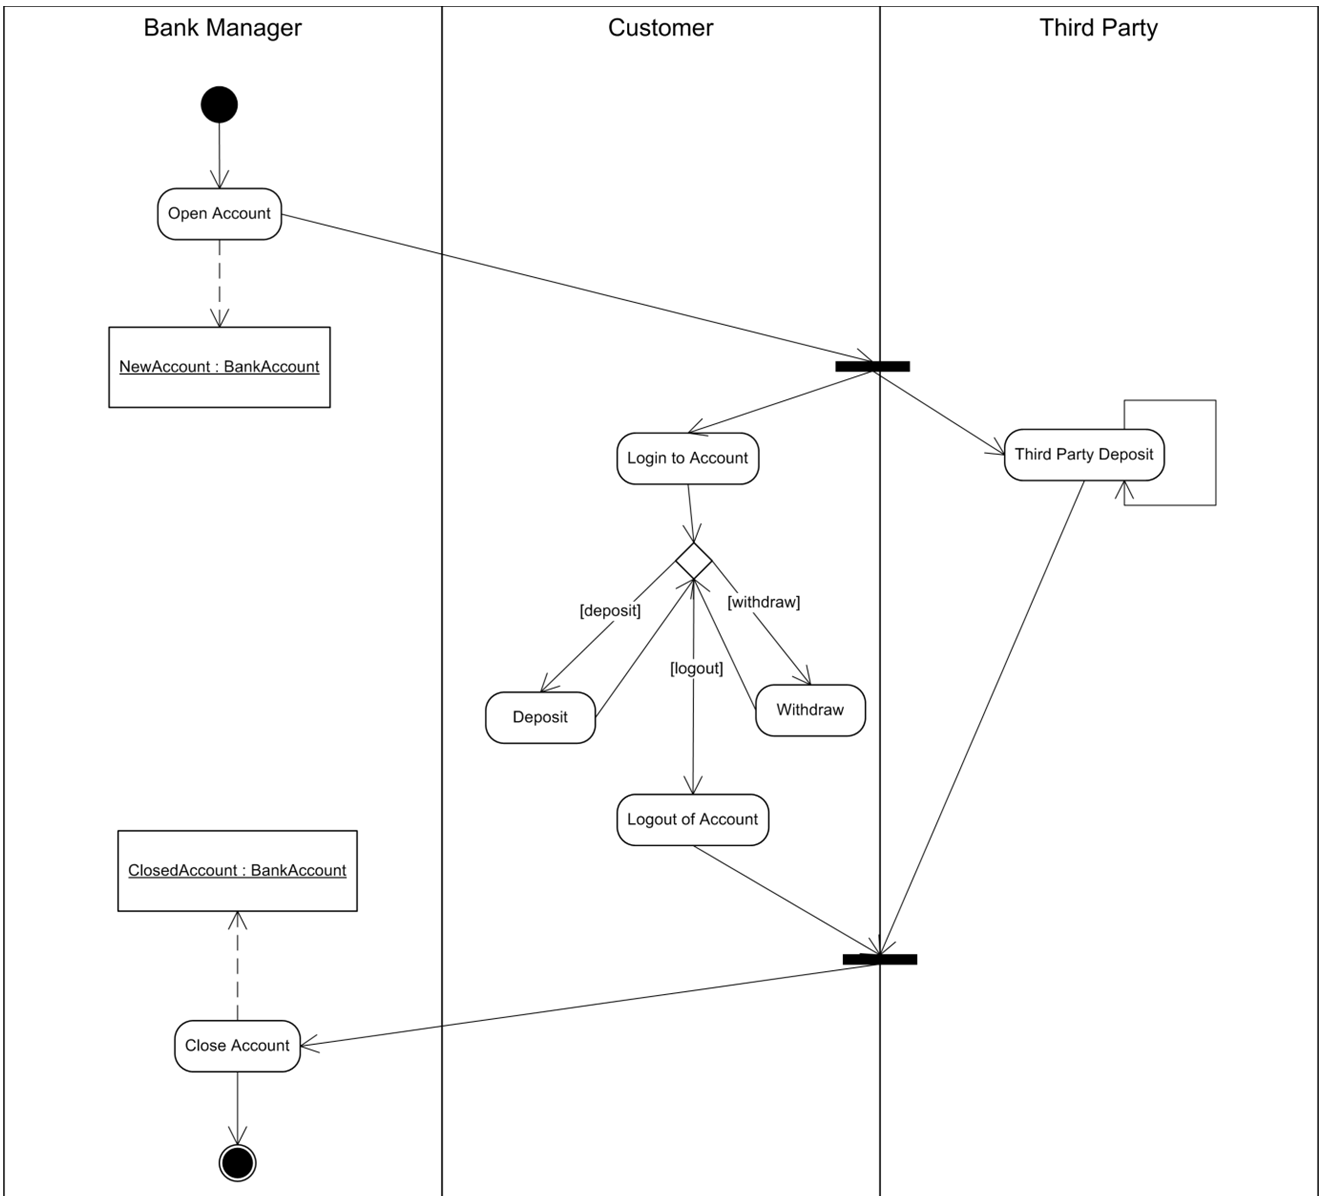 End-to-End UML: Activity Diagram > Business Analyst